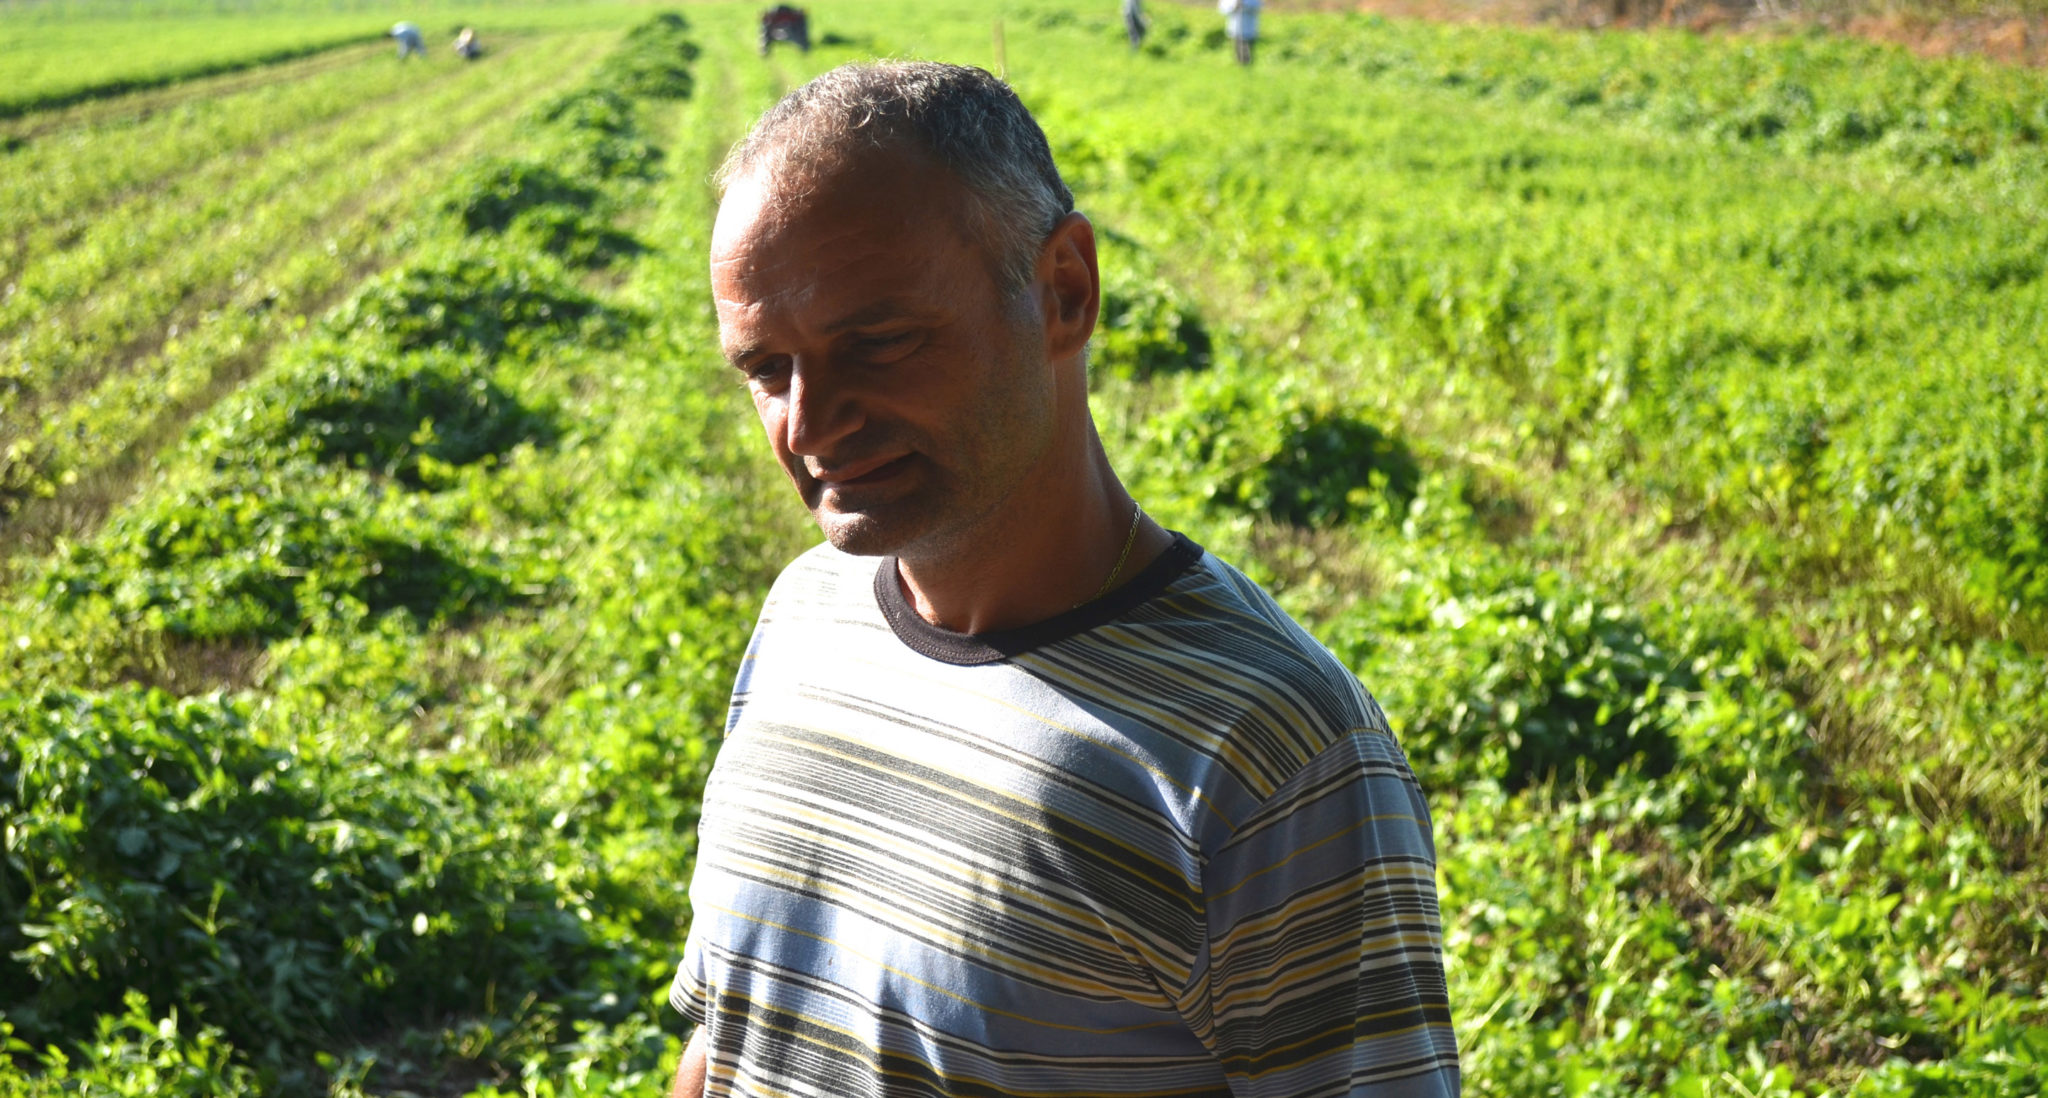 Cultivating Medicinal Plants in Bulgaria